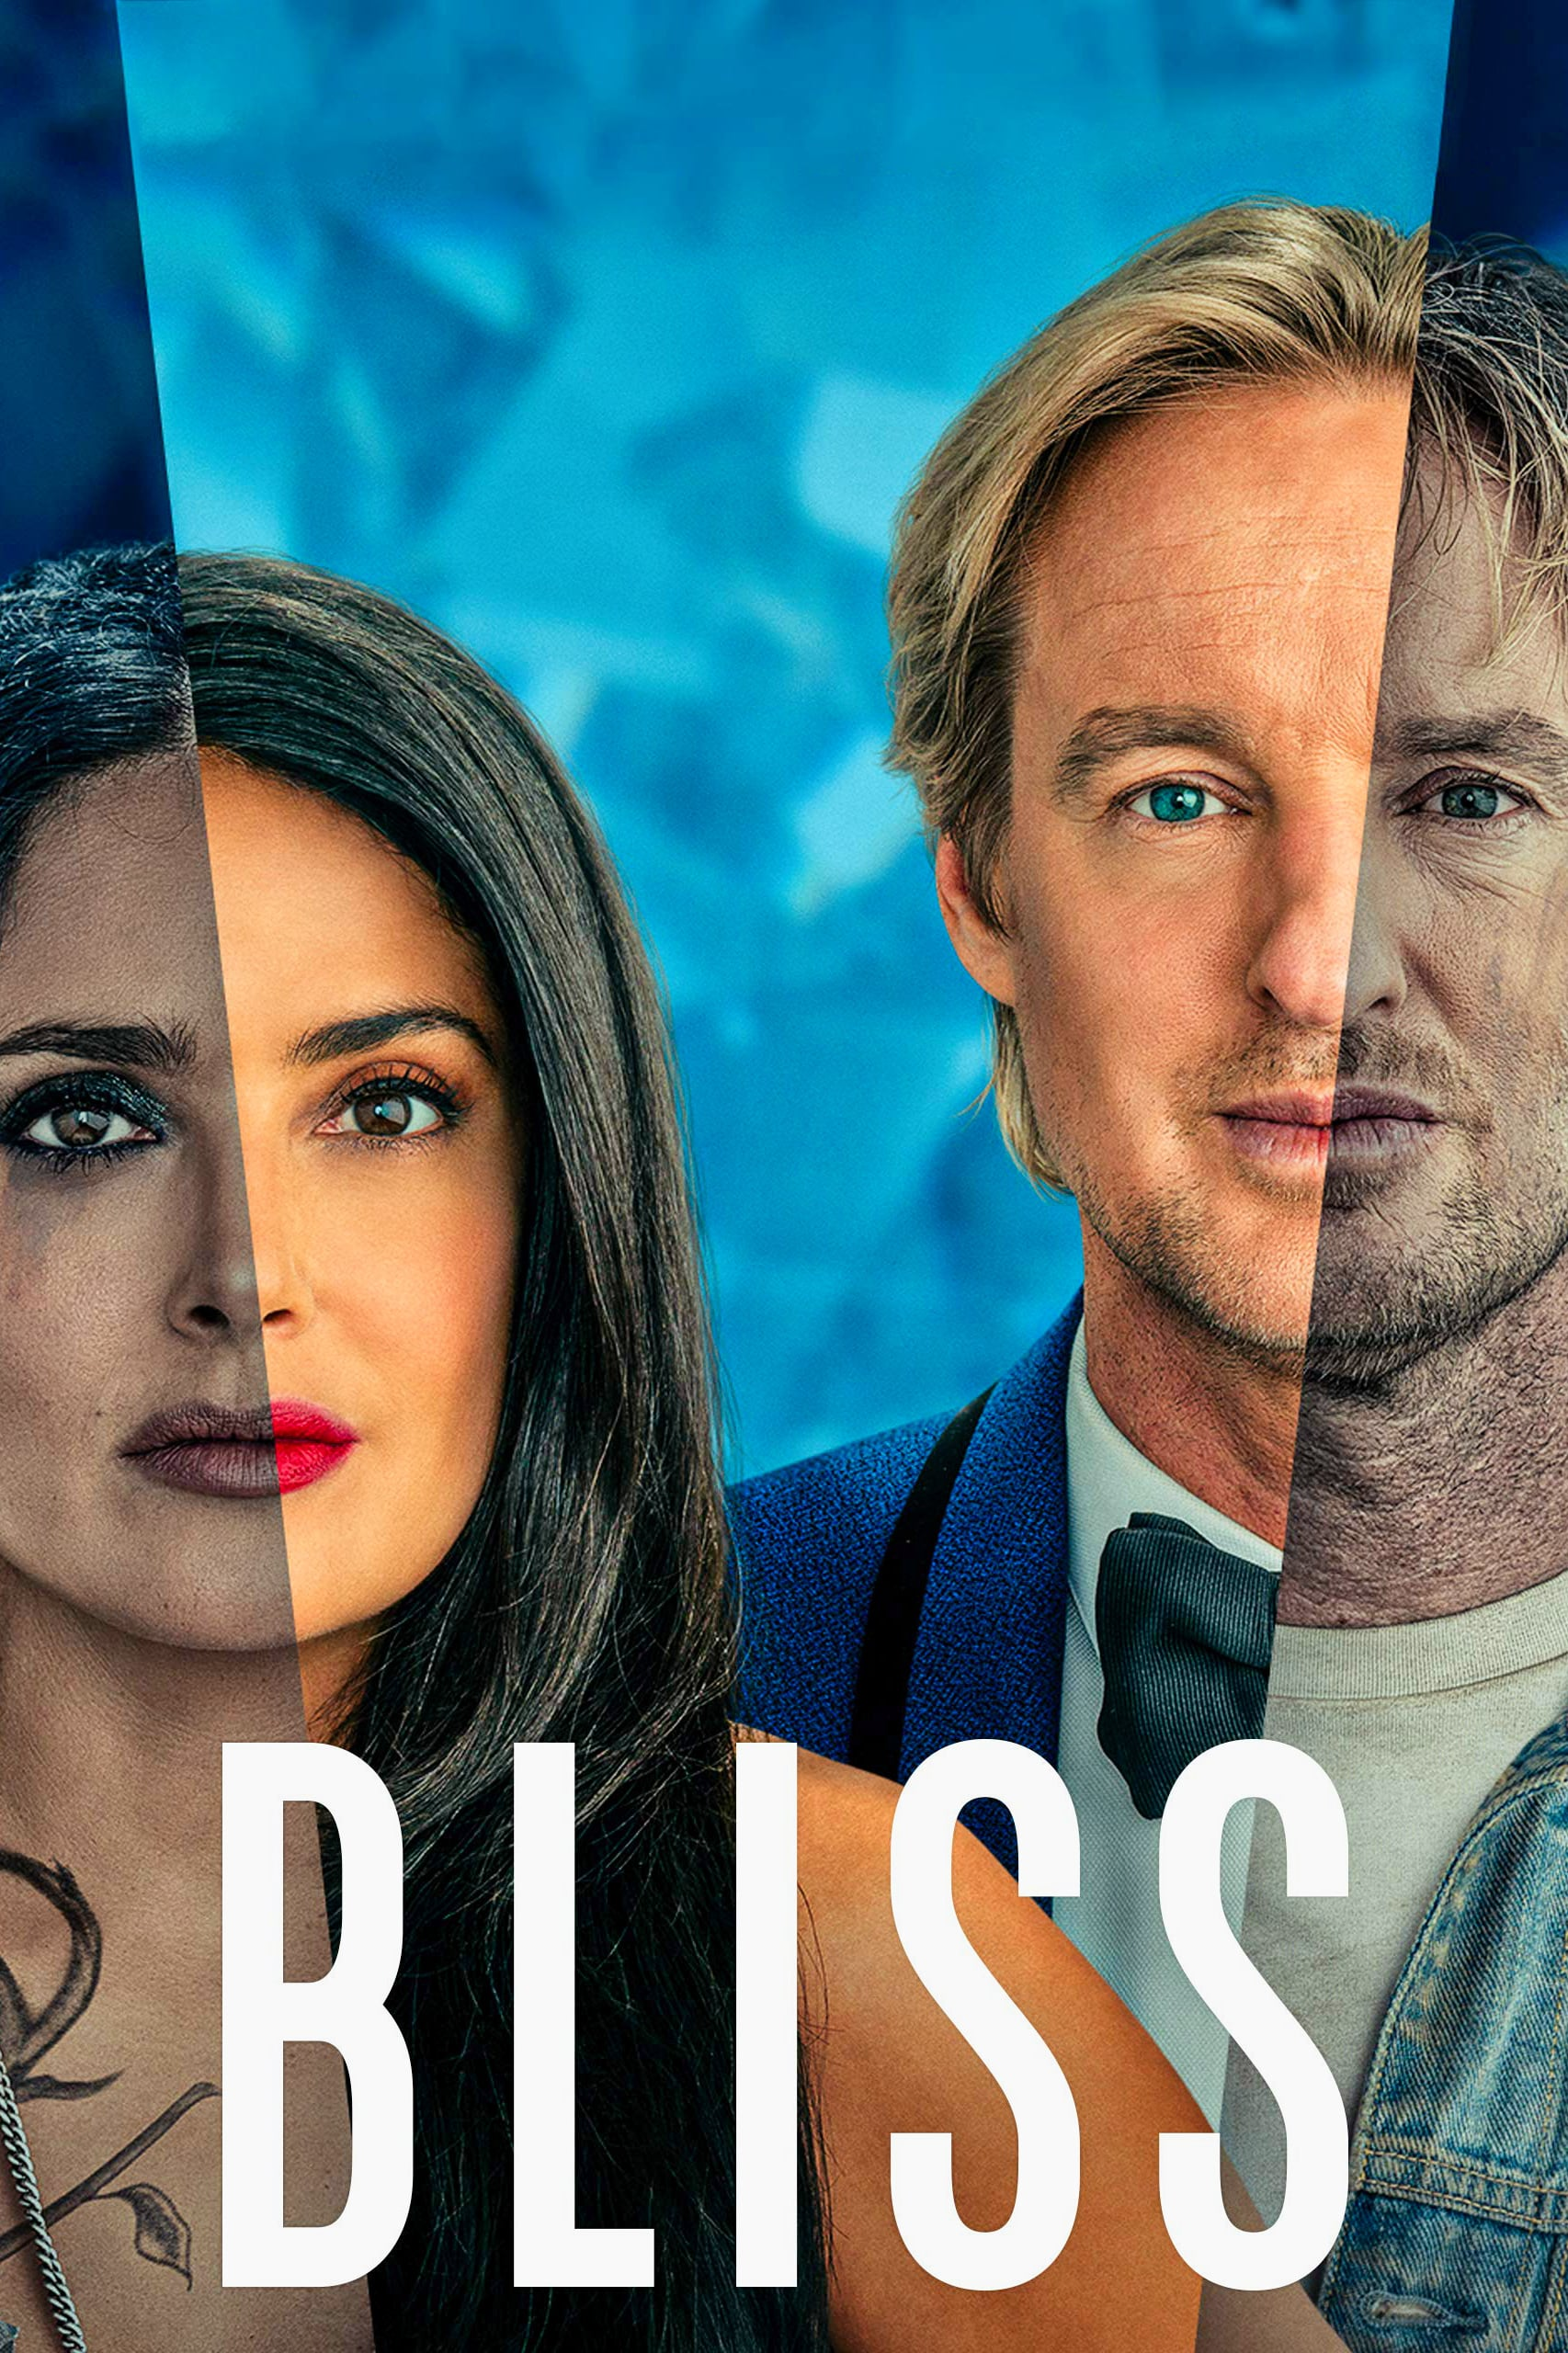 Bliss Movie Streaming Online